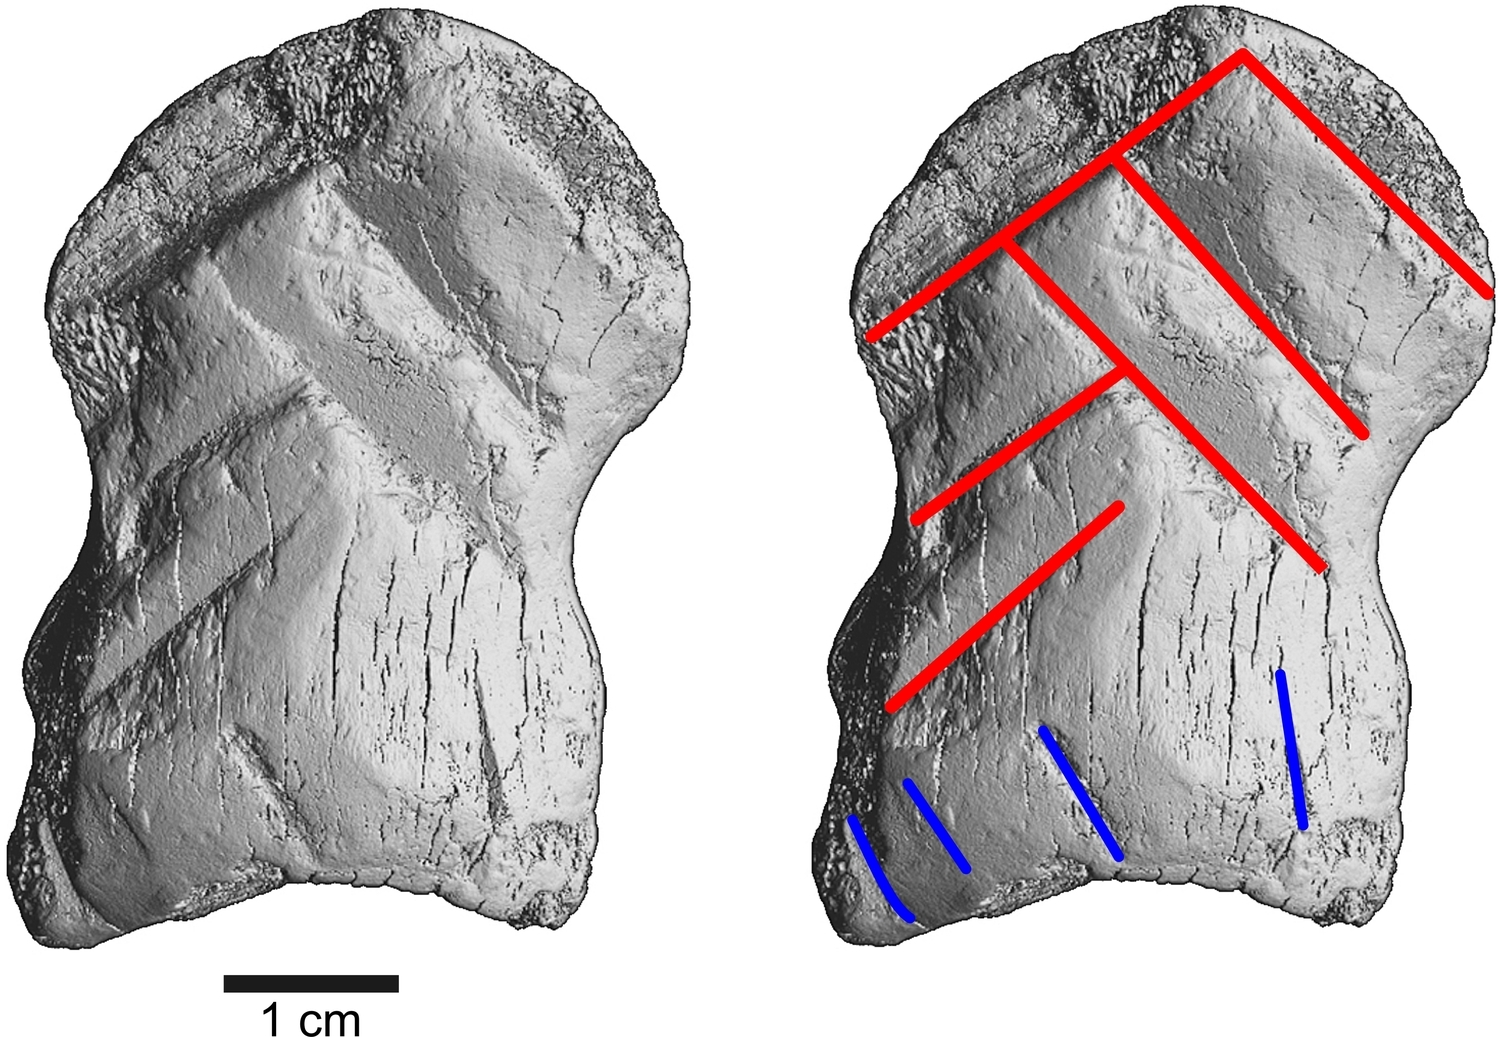 microCT scan with marking of the notches. Marked in red are the six notches that create the angular pattern, marked in blue are accompanying notches.